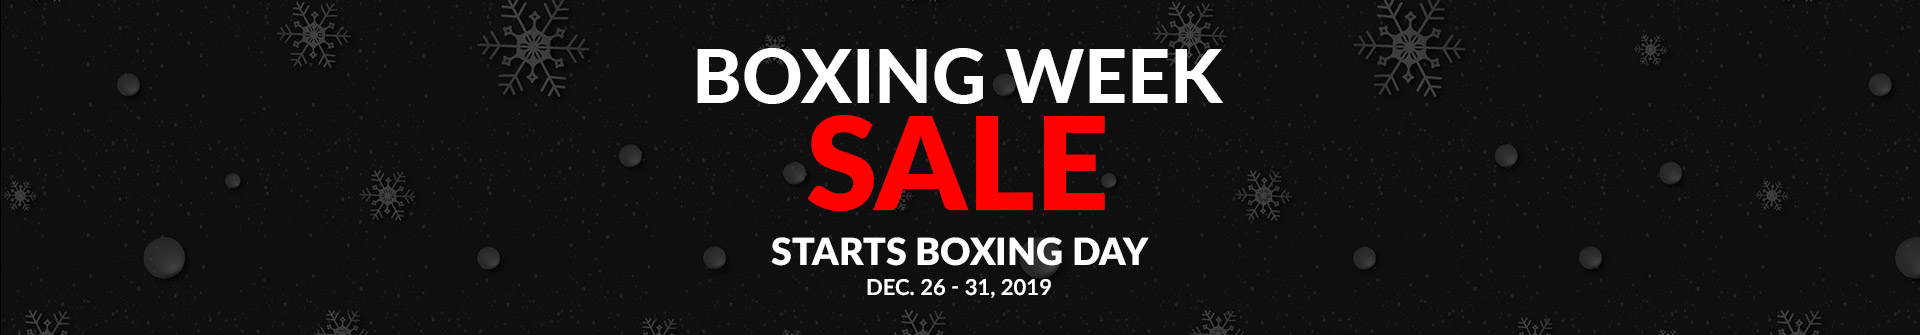 Boxing Week Sale Starts December 26, 2019 at Source For Sports